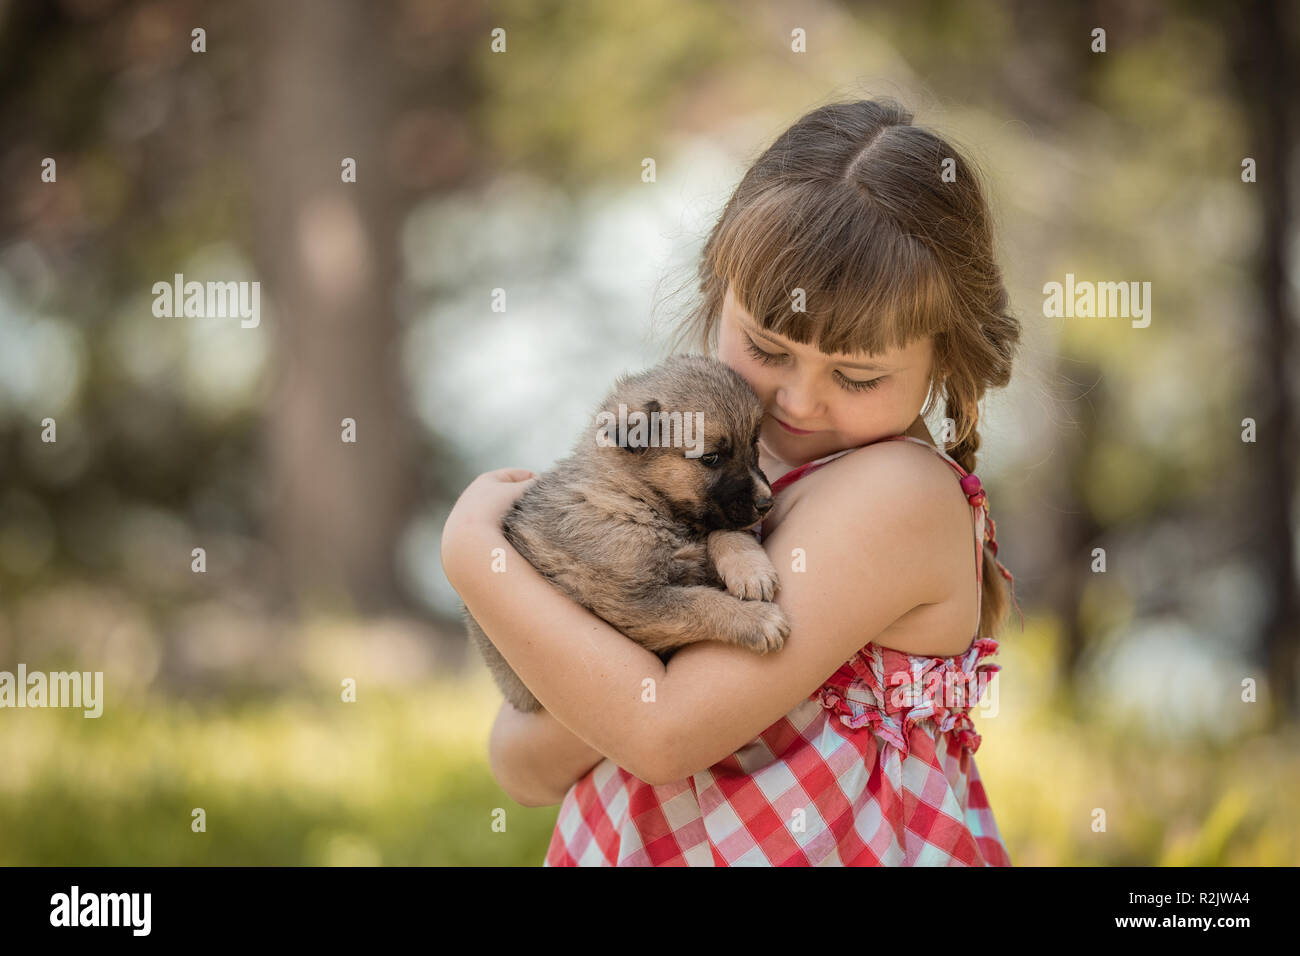 Cute little girl with a little puppy. - Stock Image